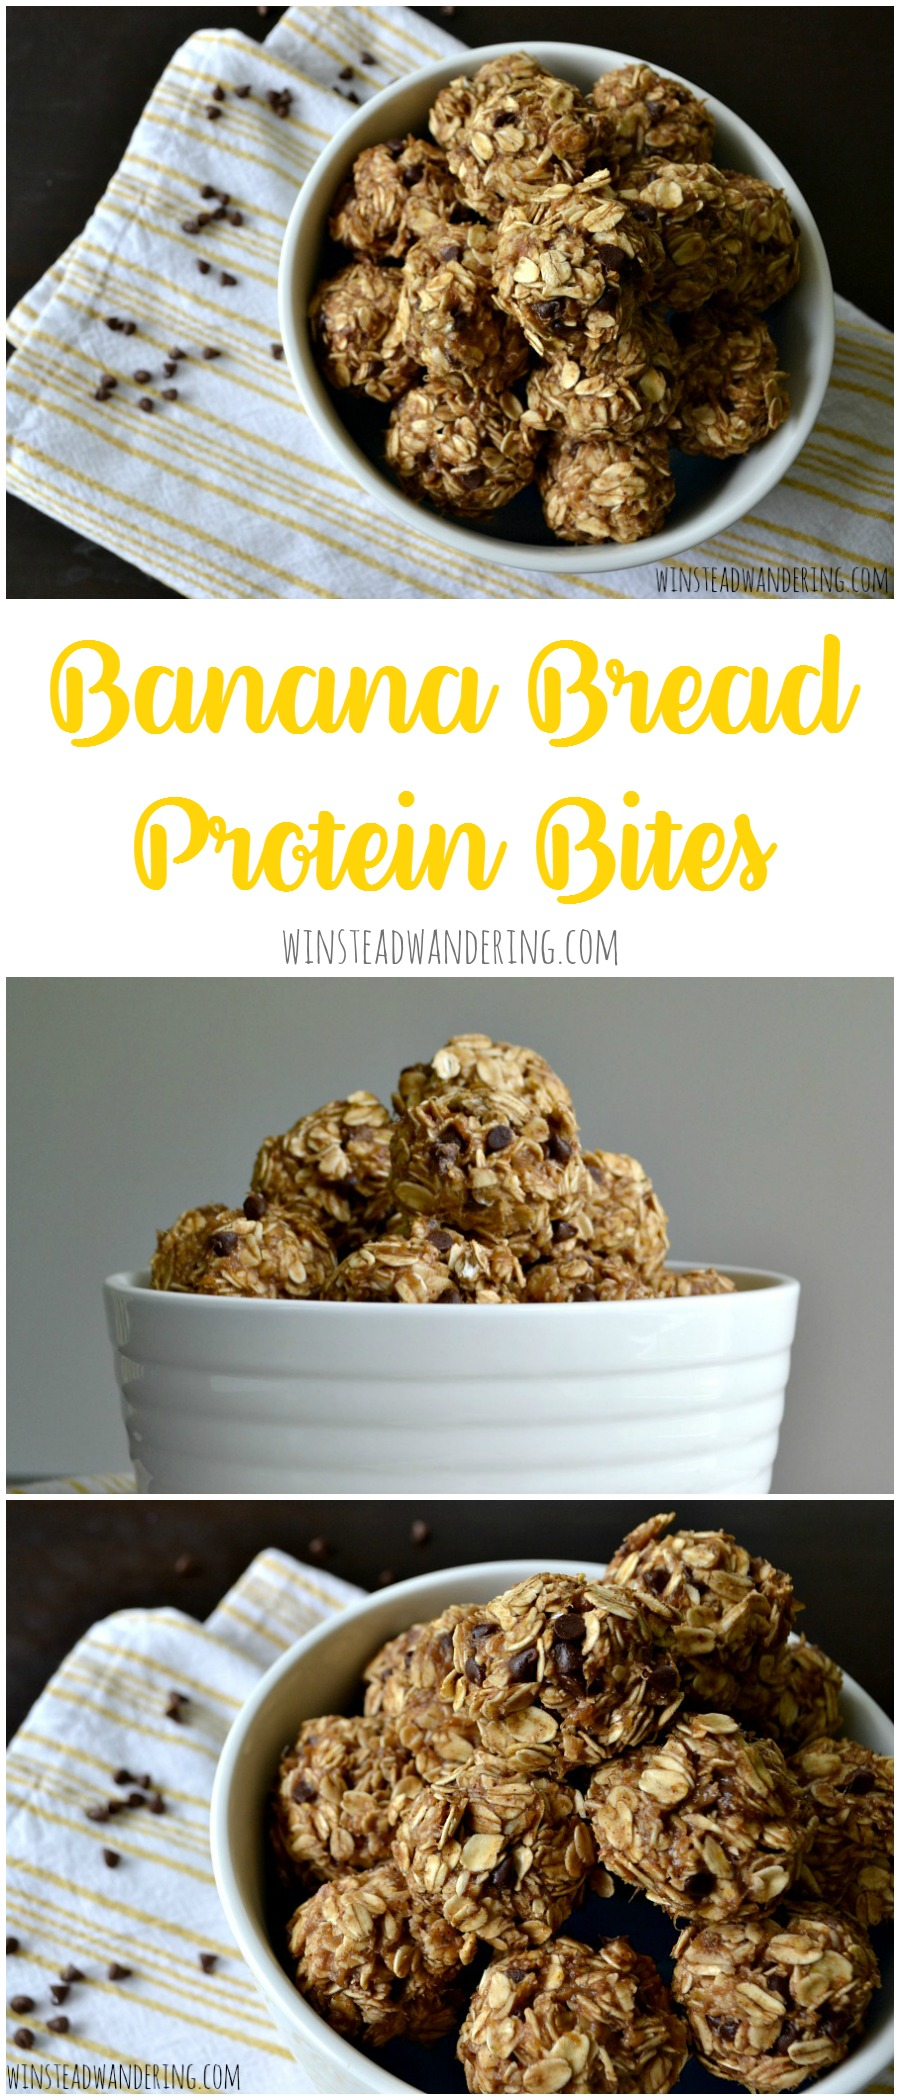 Banana bread protein bites are full of big banana flavor and filling protein. No gluten, dairy, or added sugar here!